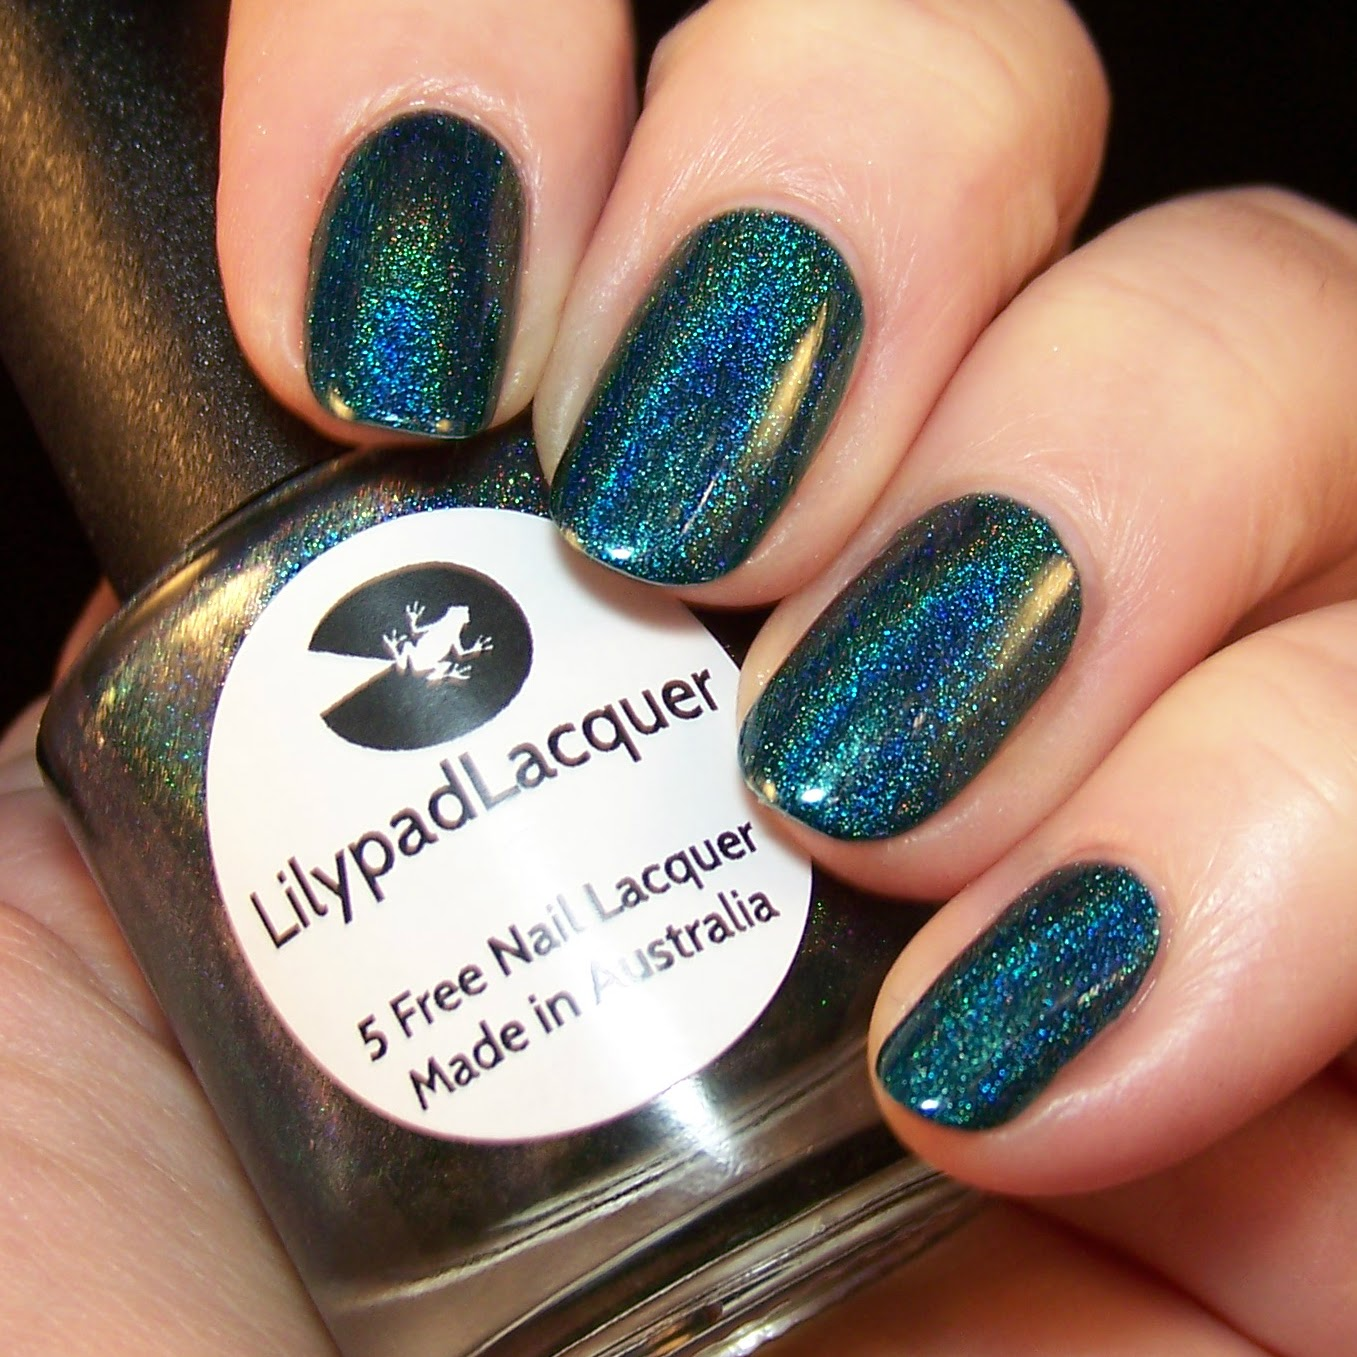 I Chose To Put Lilypad Lacquer Dance With A Pea On My Nails And Use Worn Out Acronym Up Top Five List